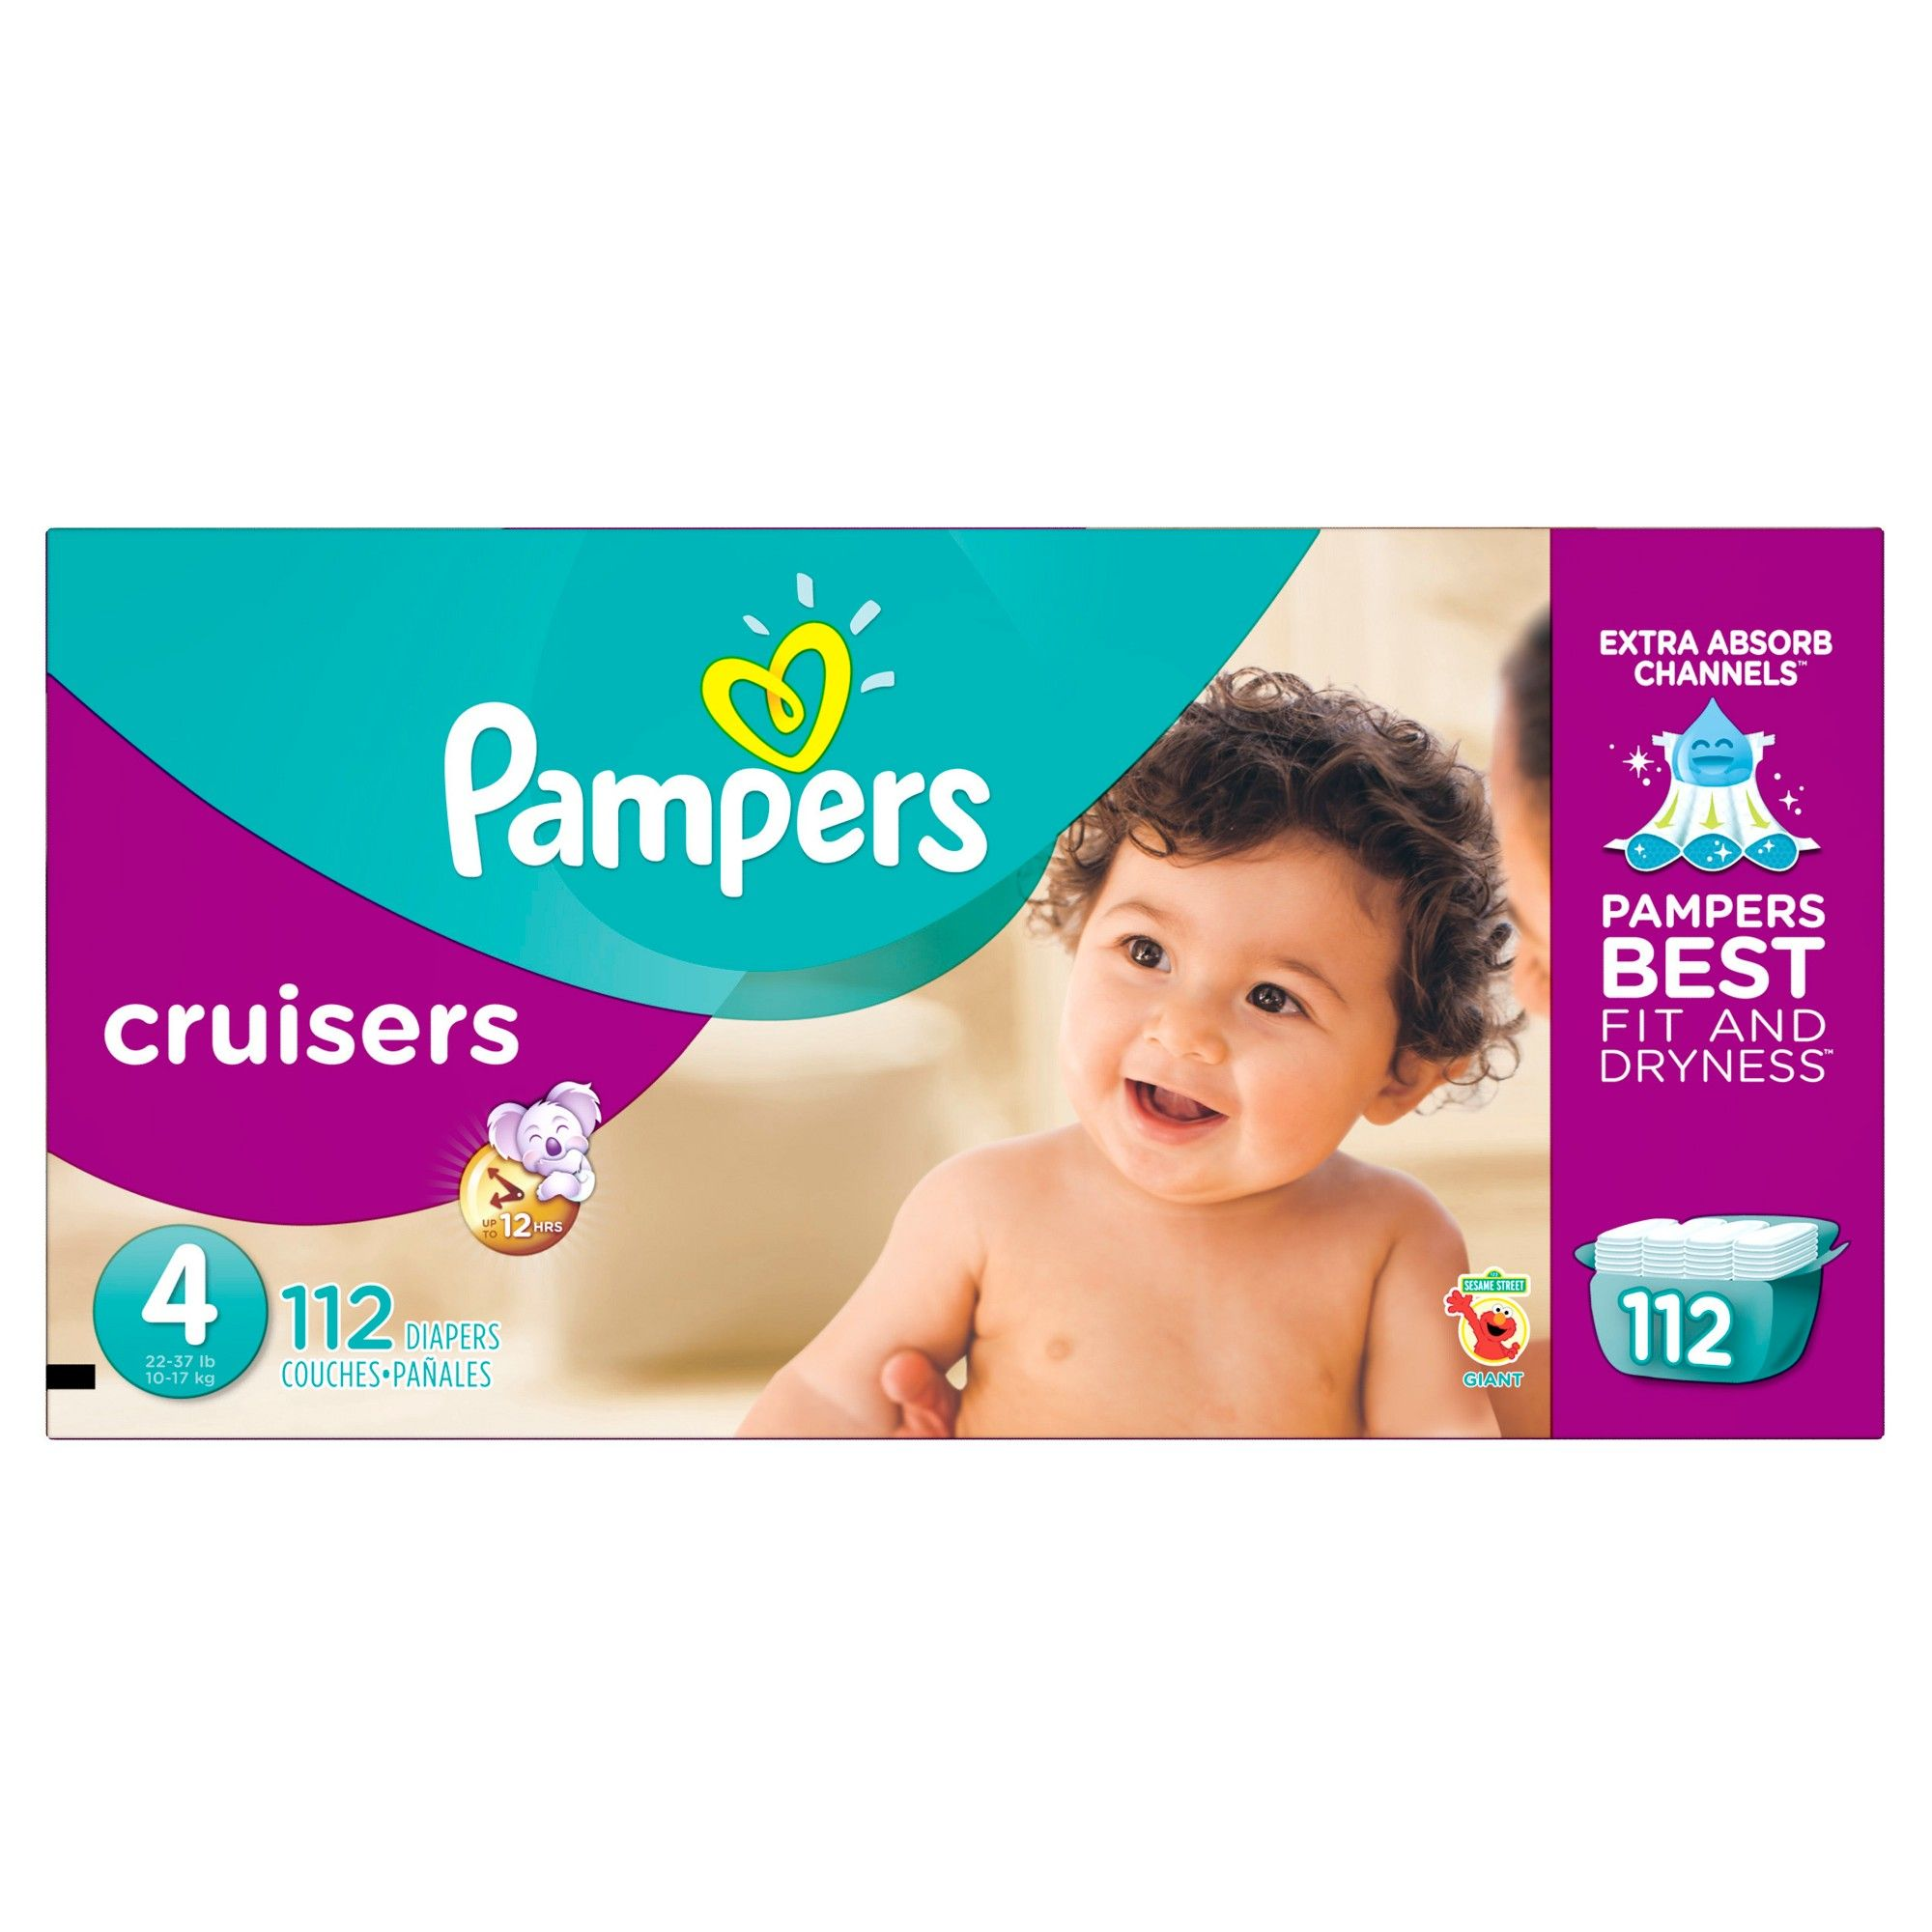 Pampers cruisers diapers giant pack size 4 112 ct diapers pampers cruisers diapers giant pack size 4 112 ct nvjuhfo Image collections